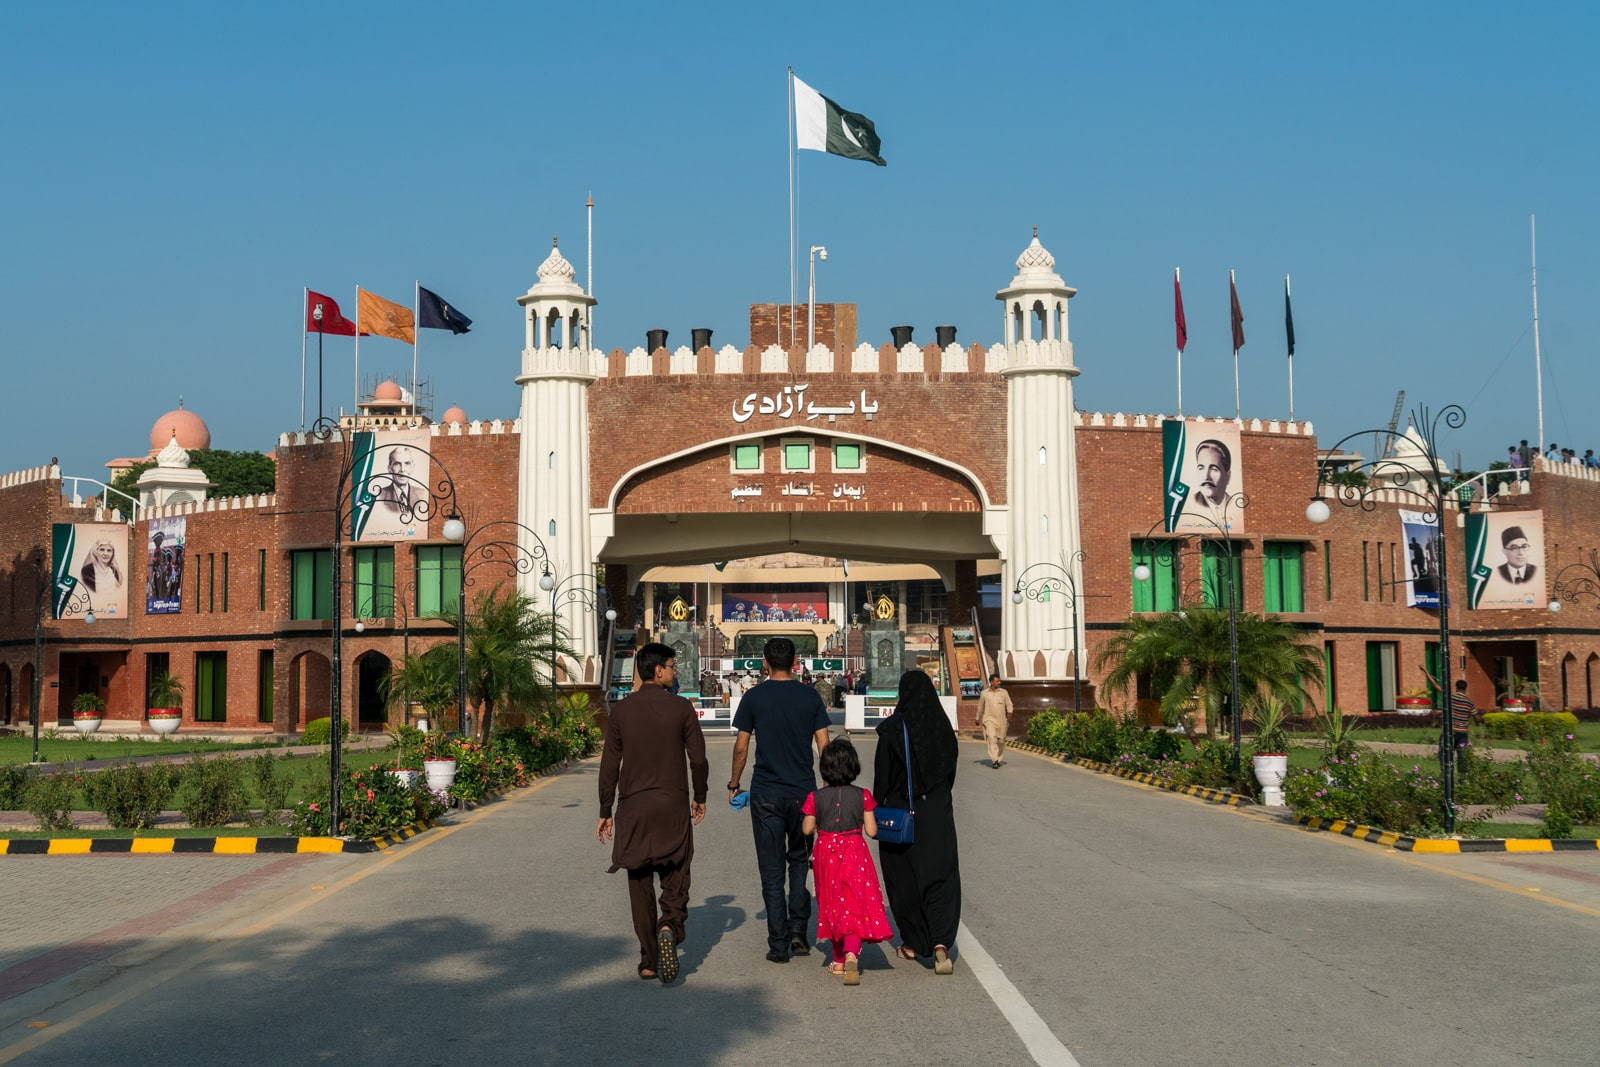 Report of crossing overland from Amritsar to Lahore at the Wagah border between India and Pakistan - The gate to the Wagah border area - Lost With Purpose travel blog